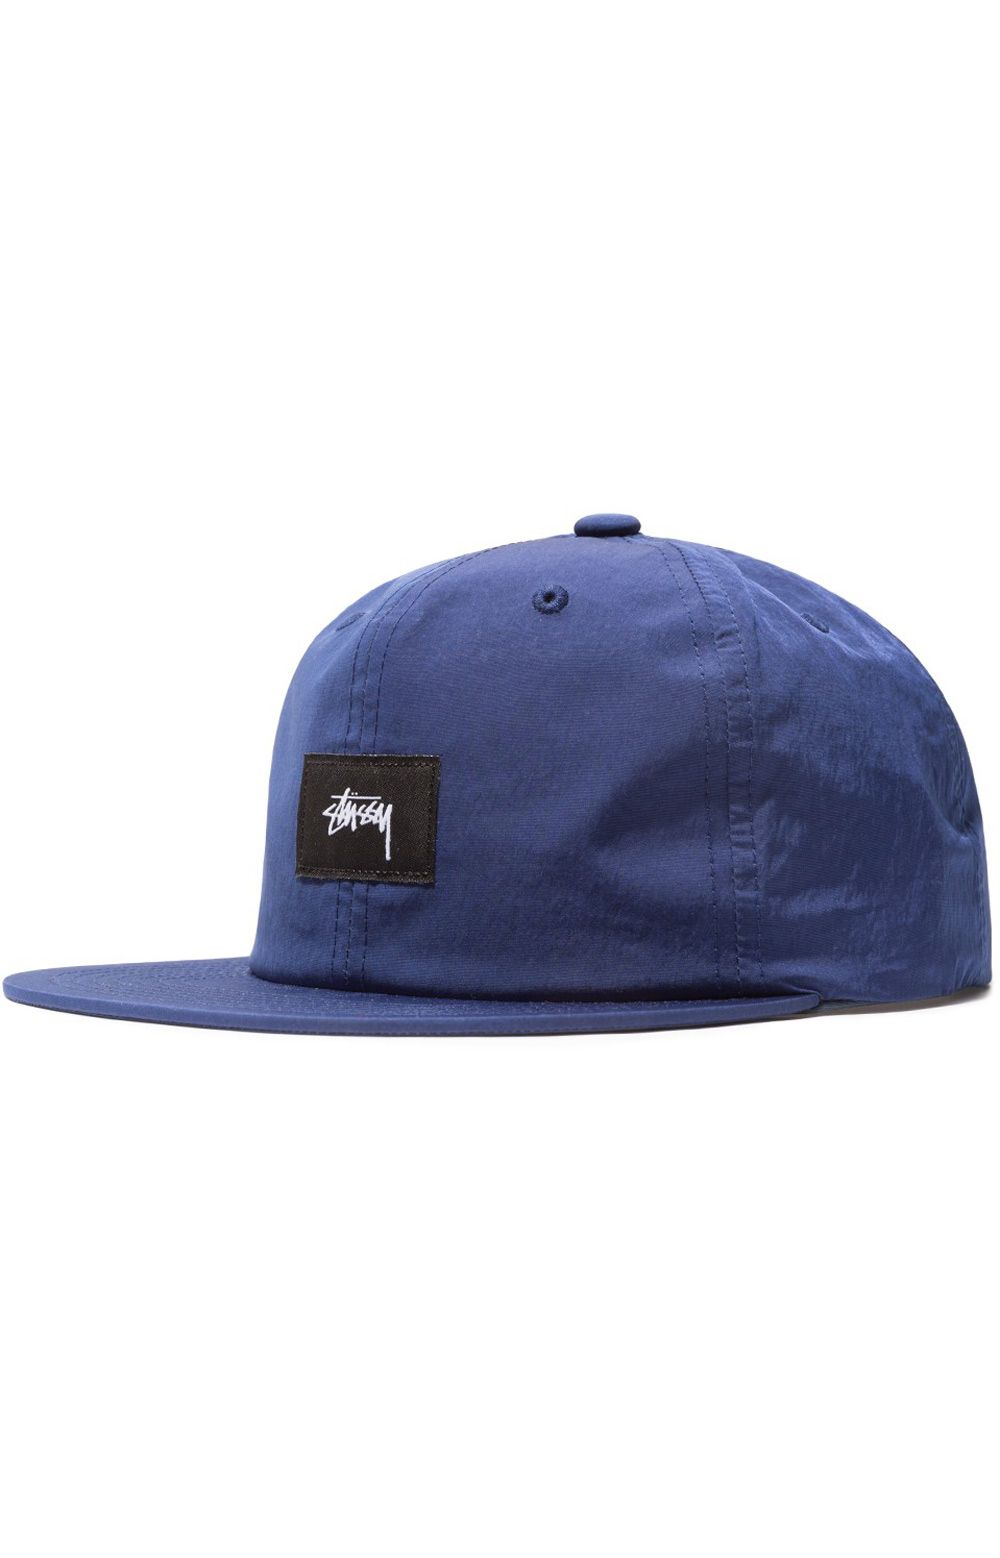 9c8acf702bb99 Stock Label Strap-Back Hat by Stussy. Structured 6 panel Flat Bill High  crown